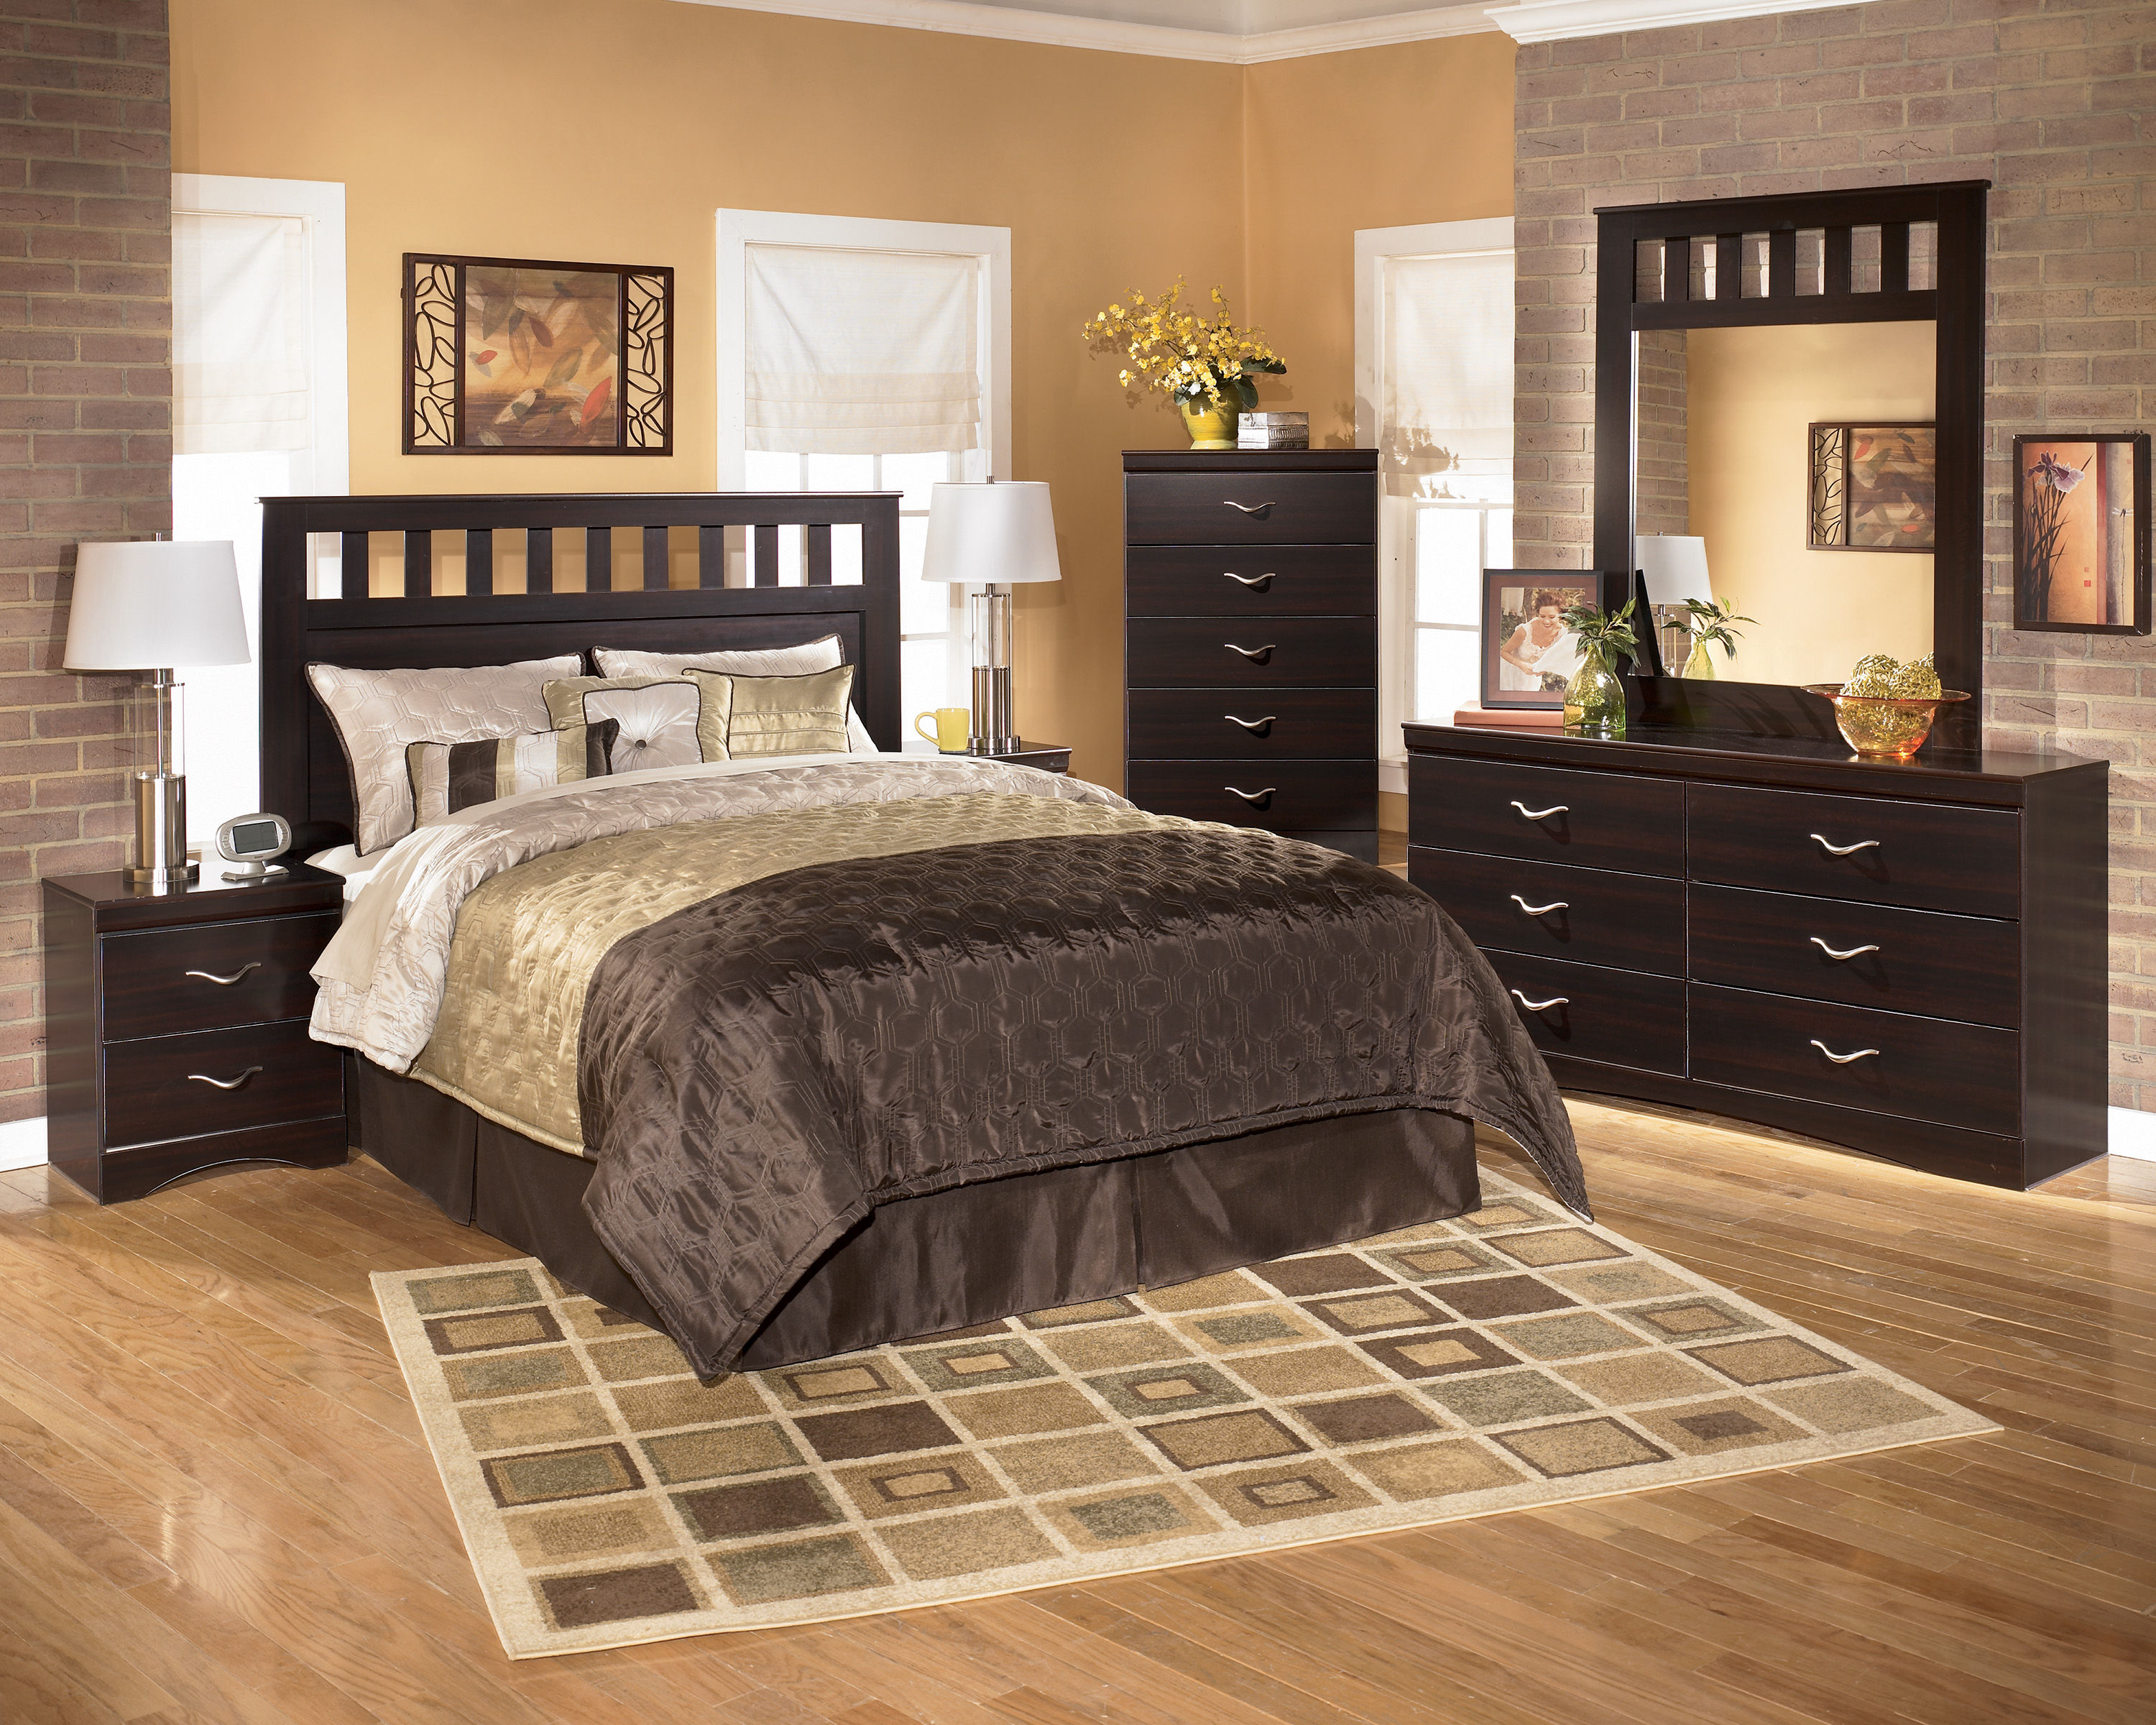 X cess contemporary merlot wood glass master bedroom set for Good deals on bedroom sets